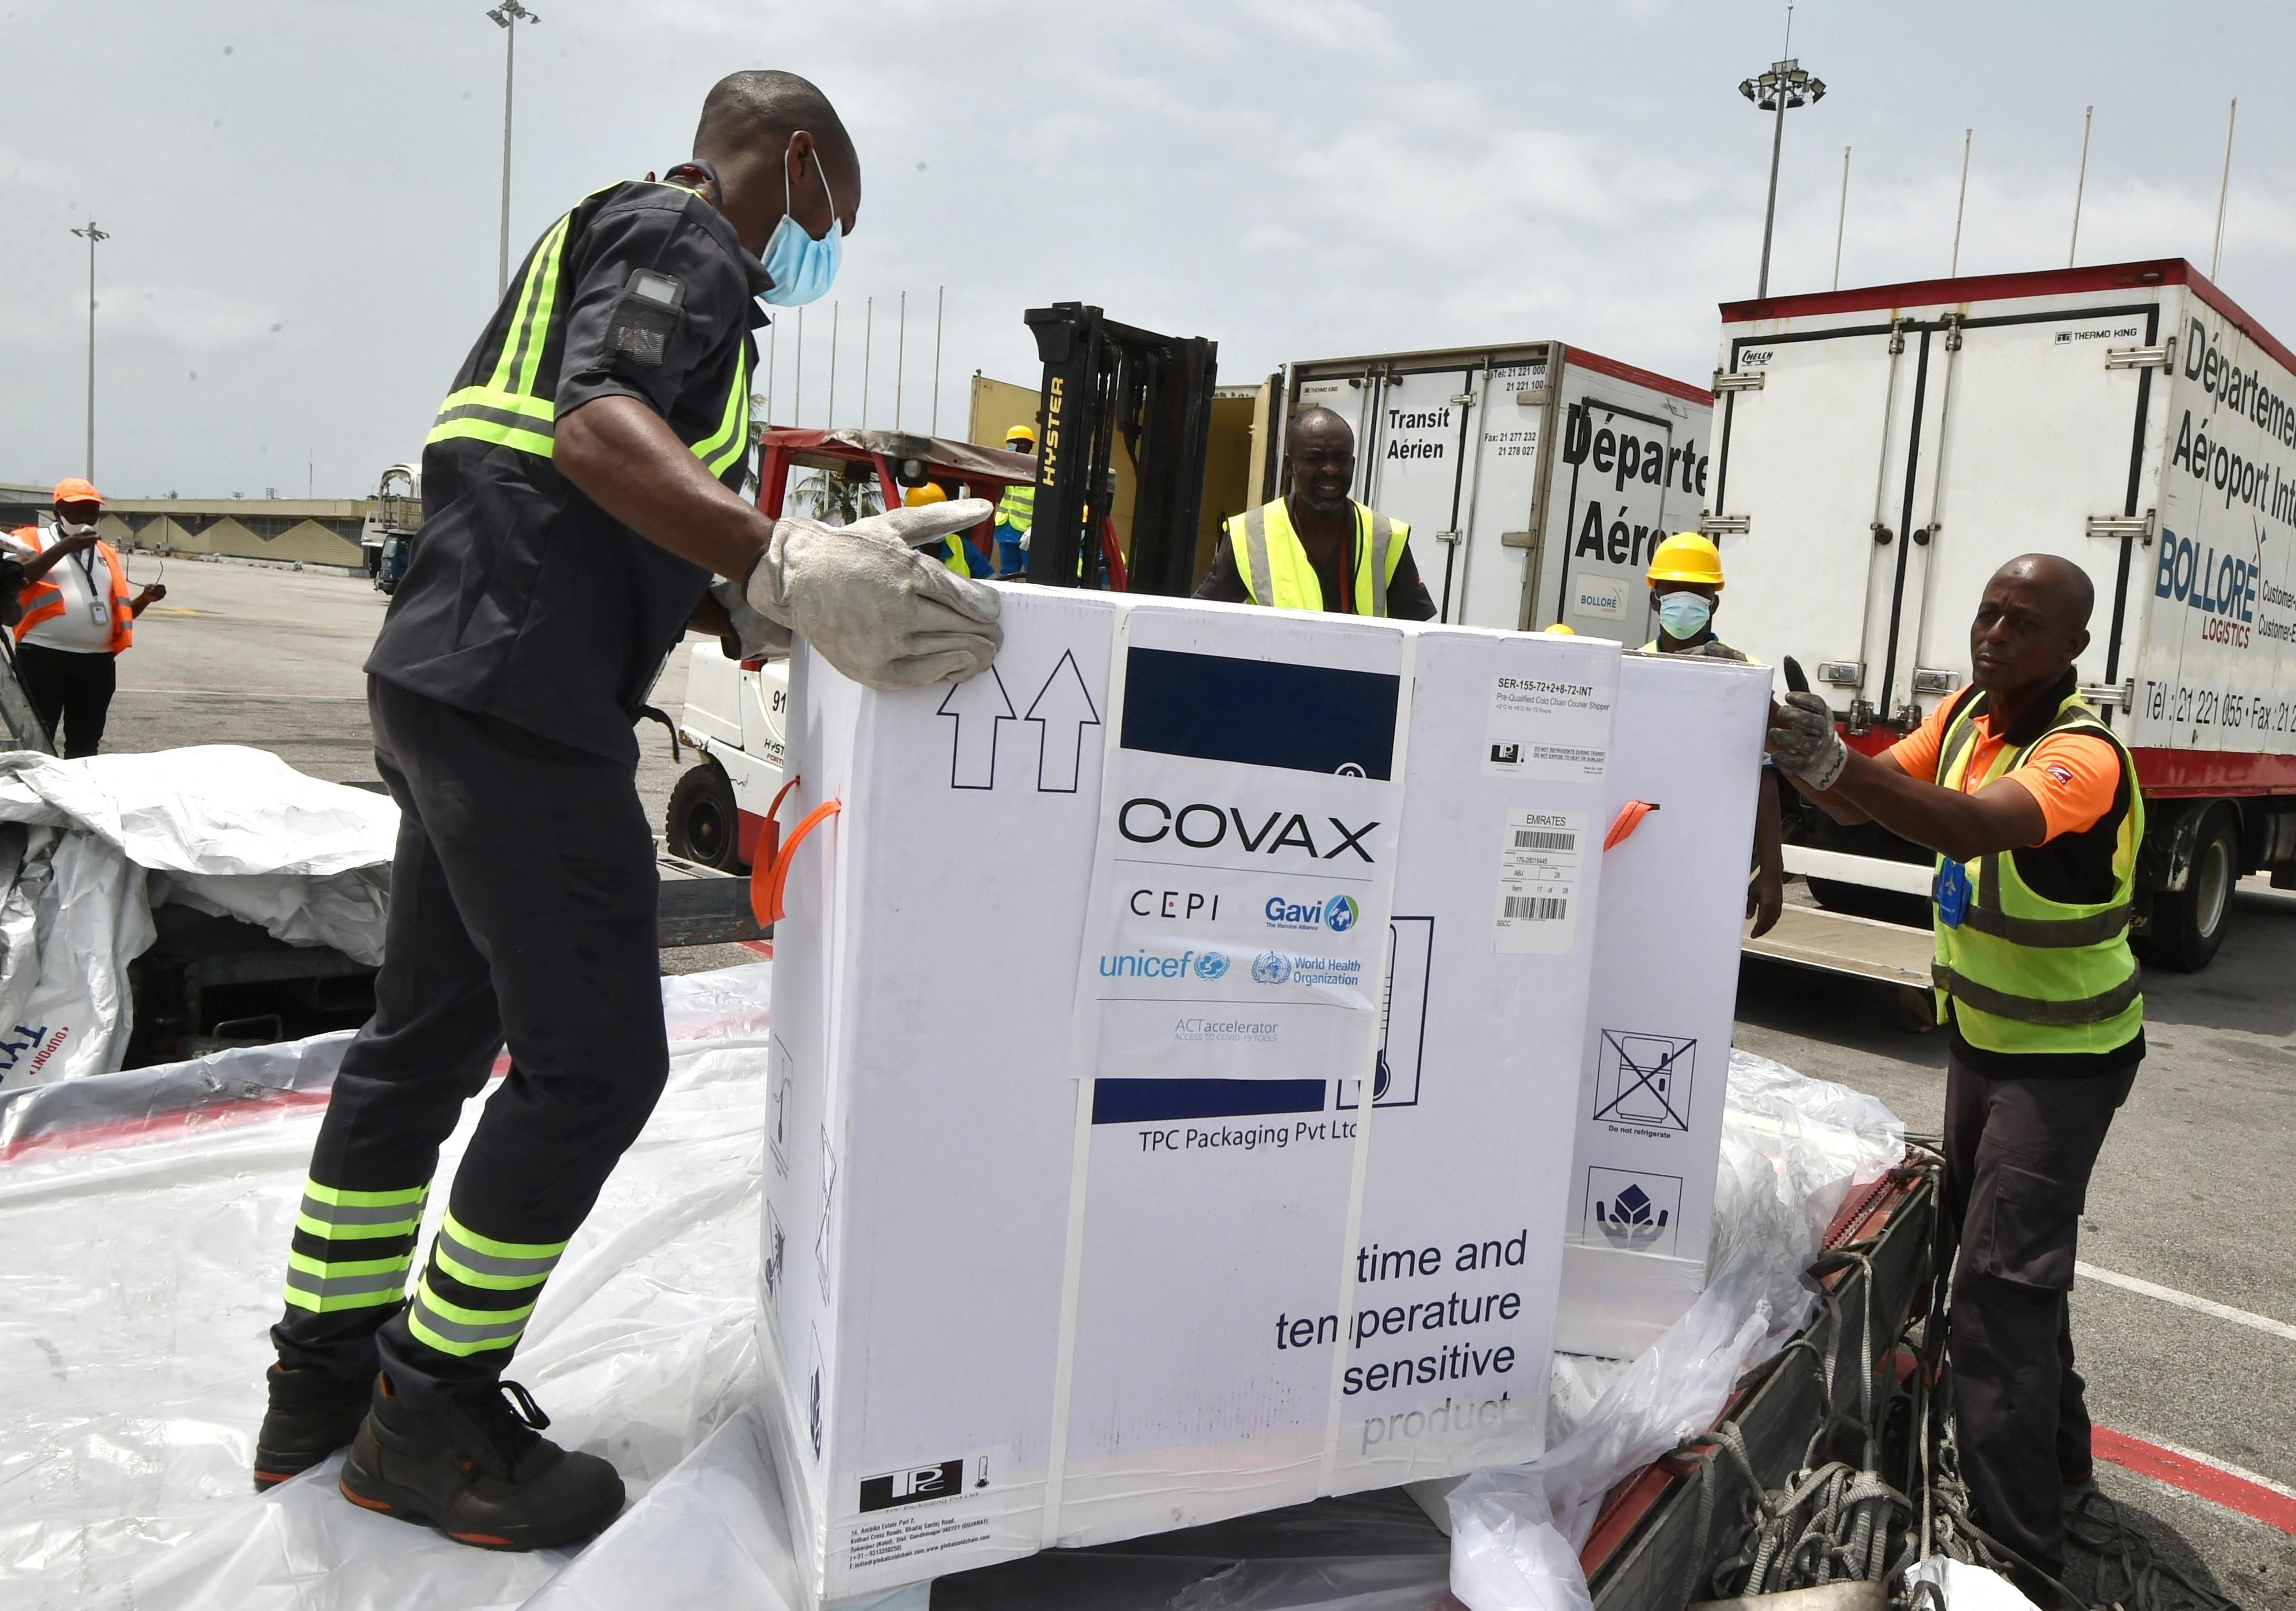 Workers offload AstraZeneca COVID-19 vaccine doses distributed through COVAX at Abidjan, Ivory Coast on February 26. - Photo: AFP